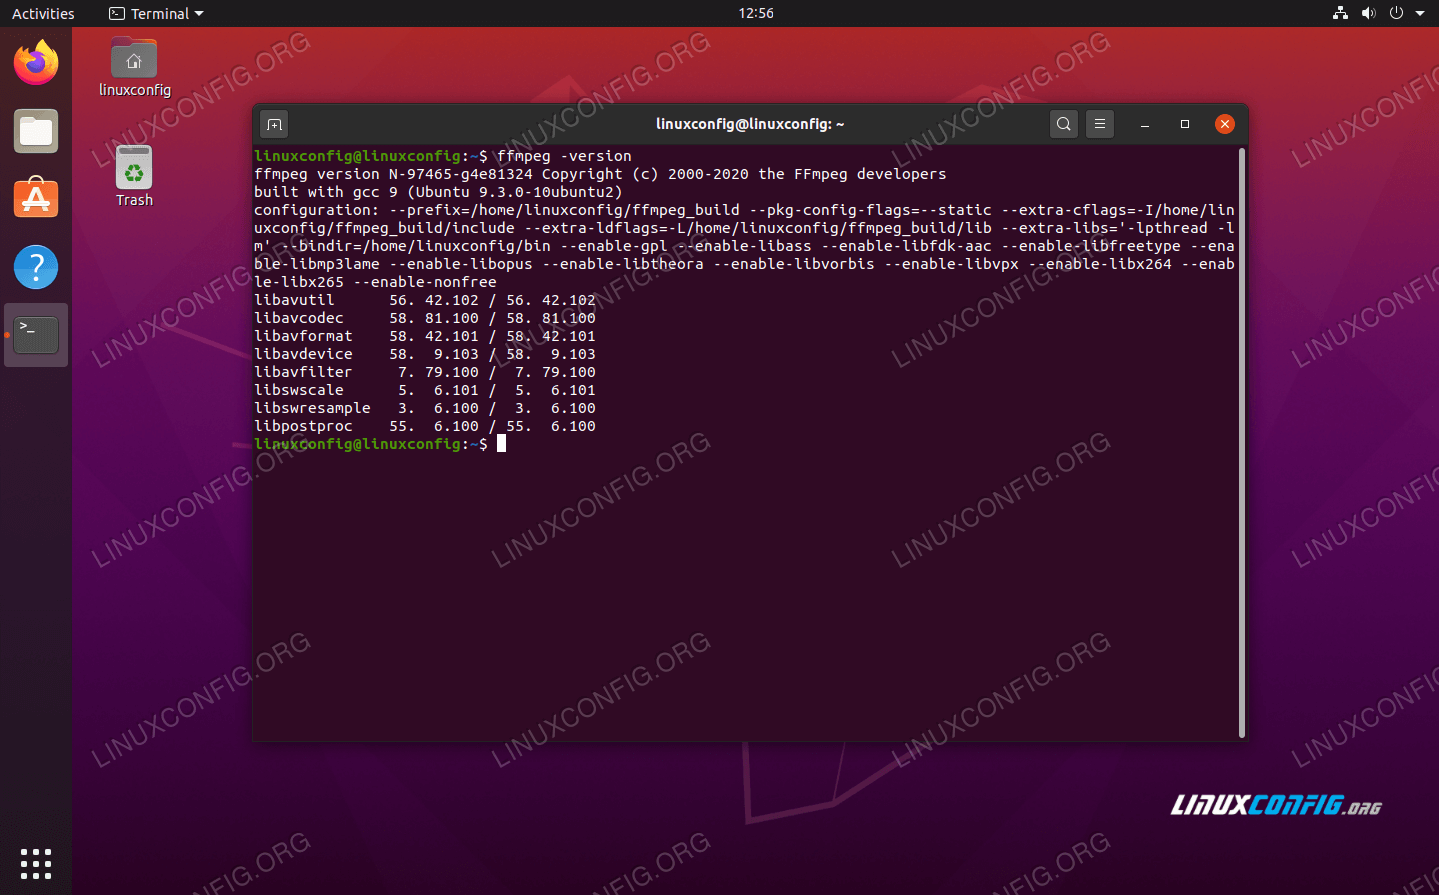 Viewing the version of FFmpeg, which is the newest one available